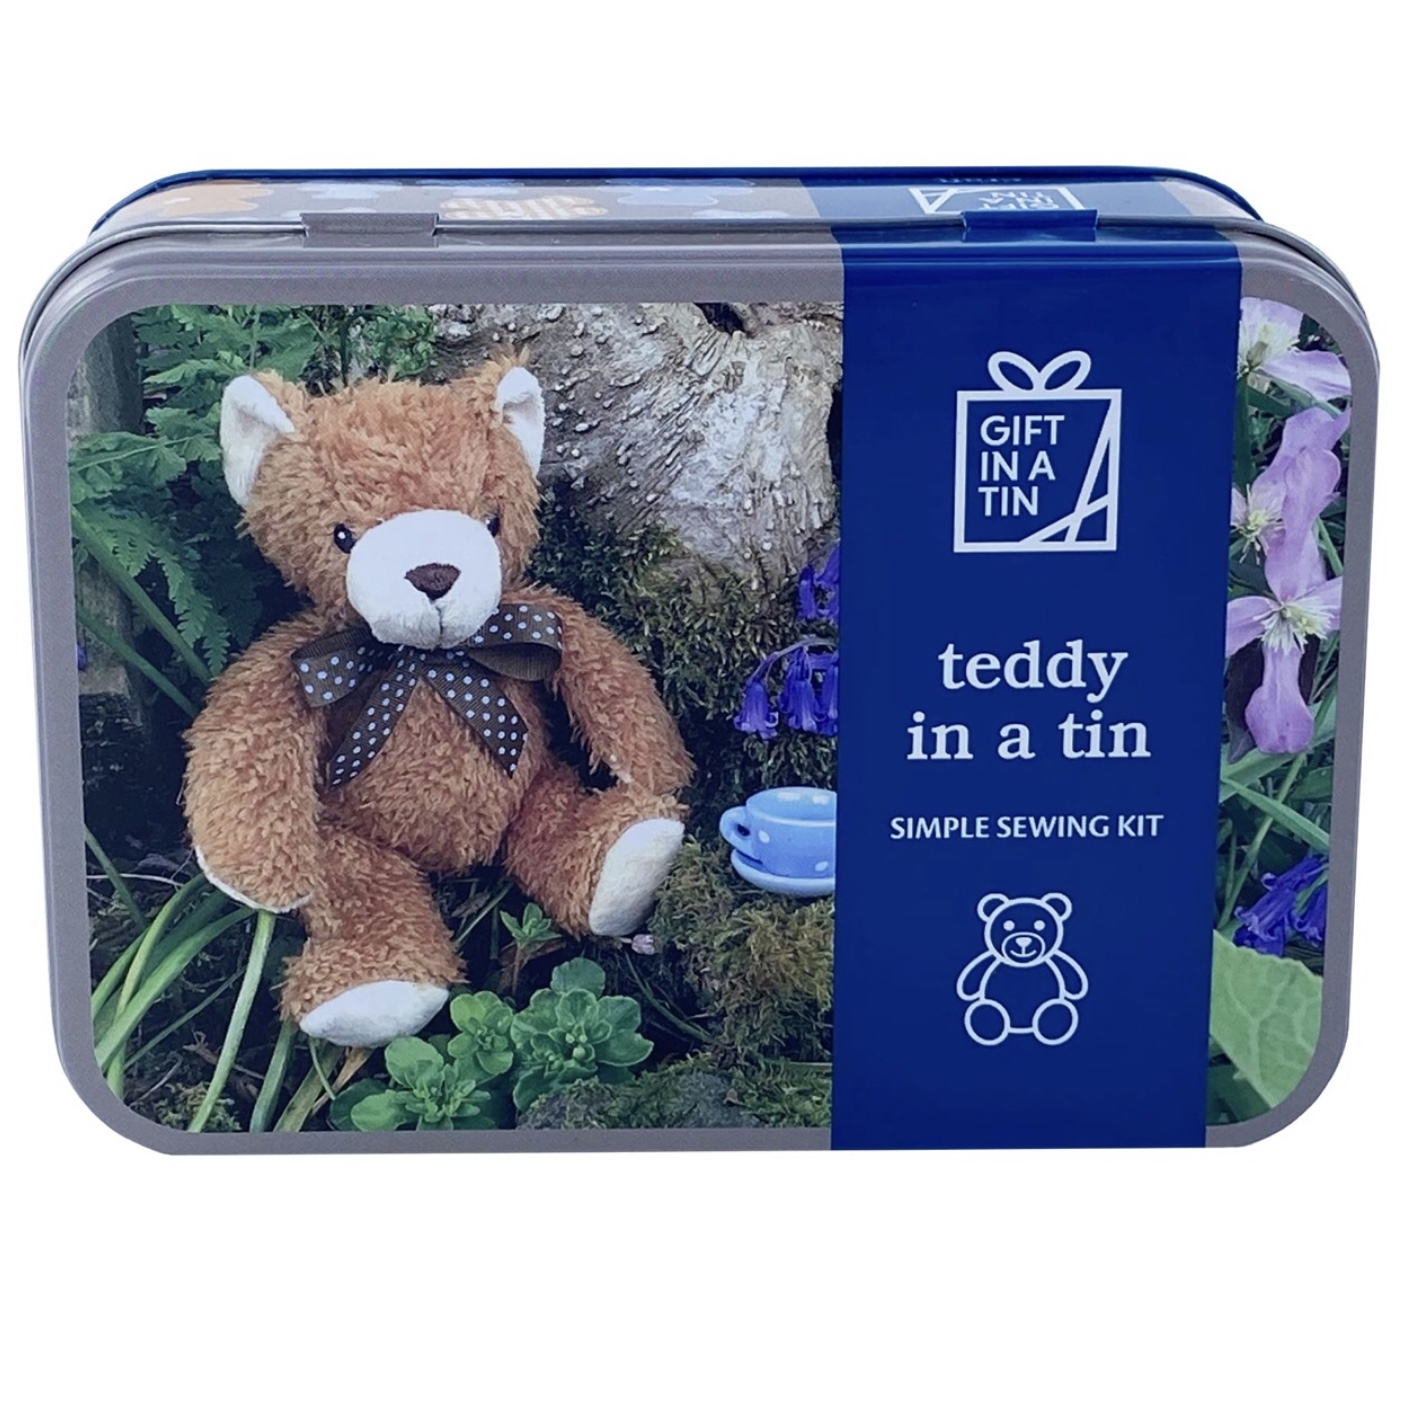 'Teddy' Gift In A Tin